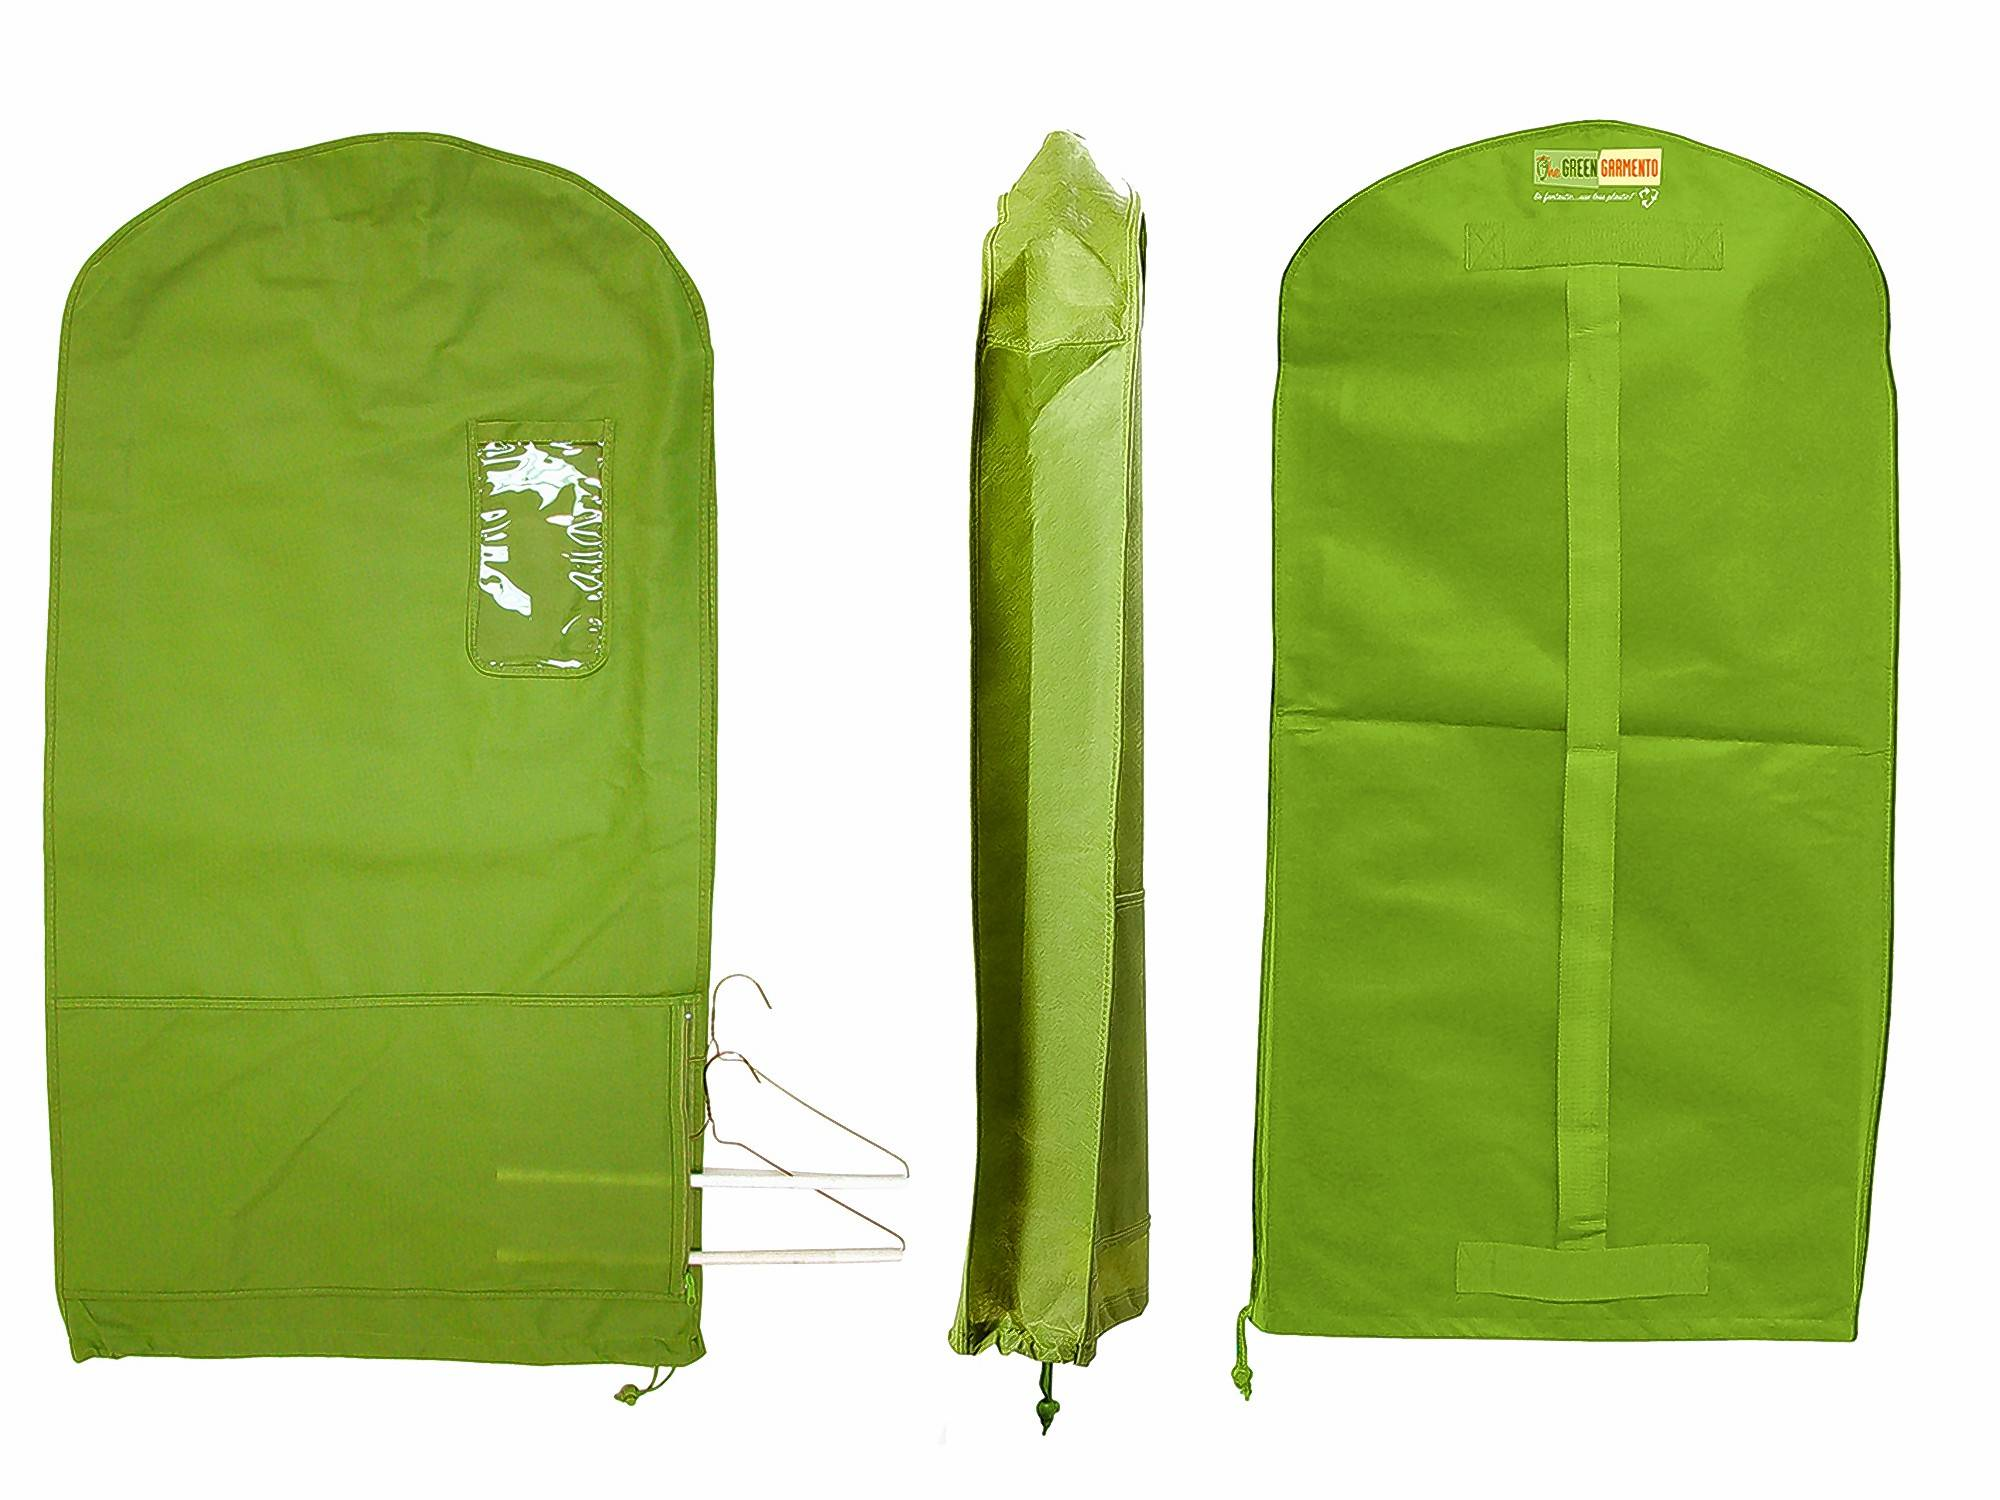 Green Garmento markets an eco-friendly reusable garment/duffel/laundry bag that can help you green your dry-cleaning routine and eliminate plastic.